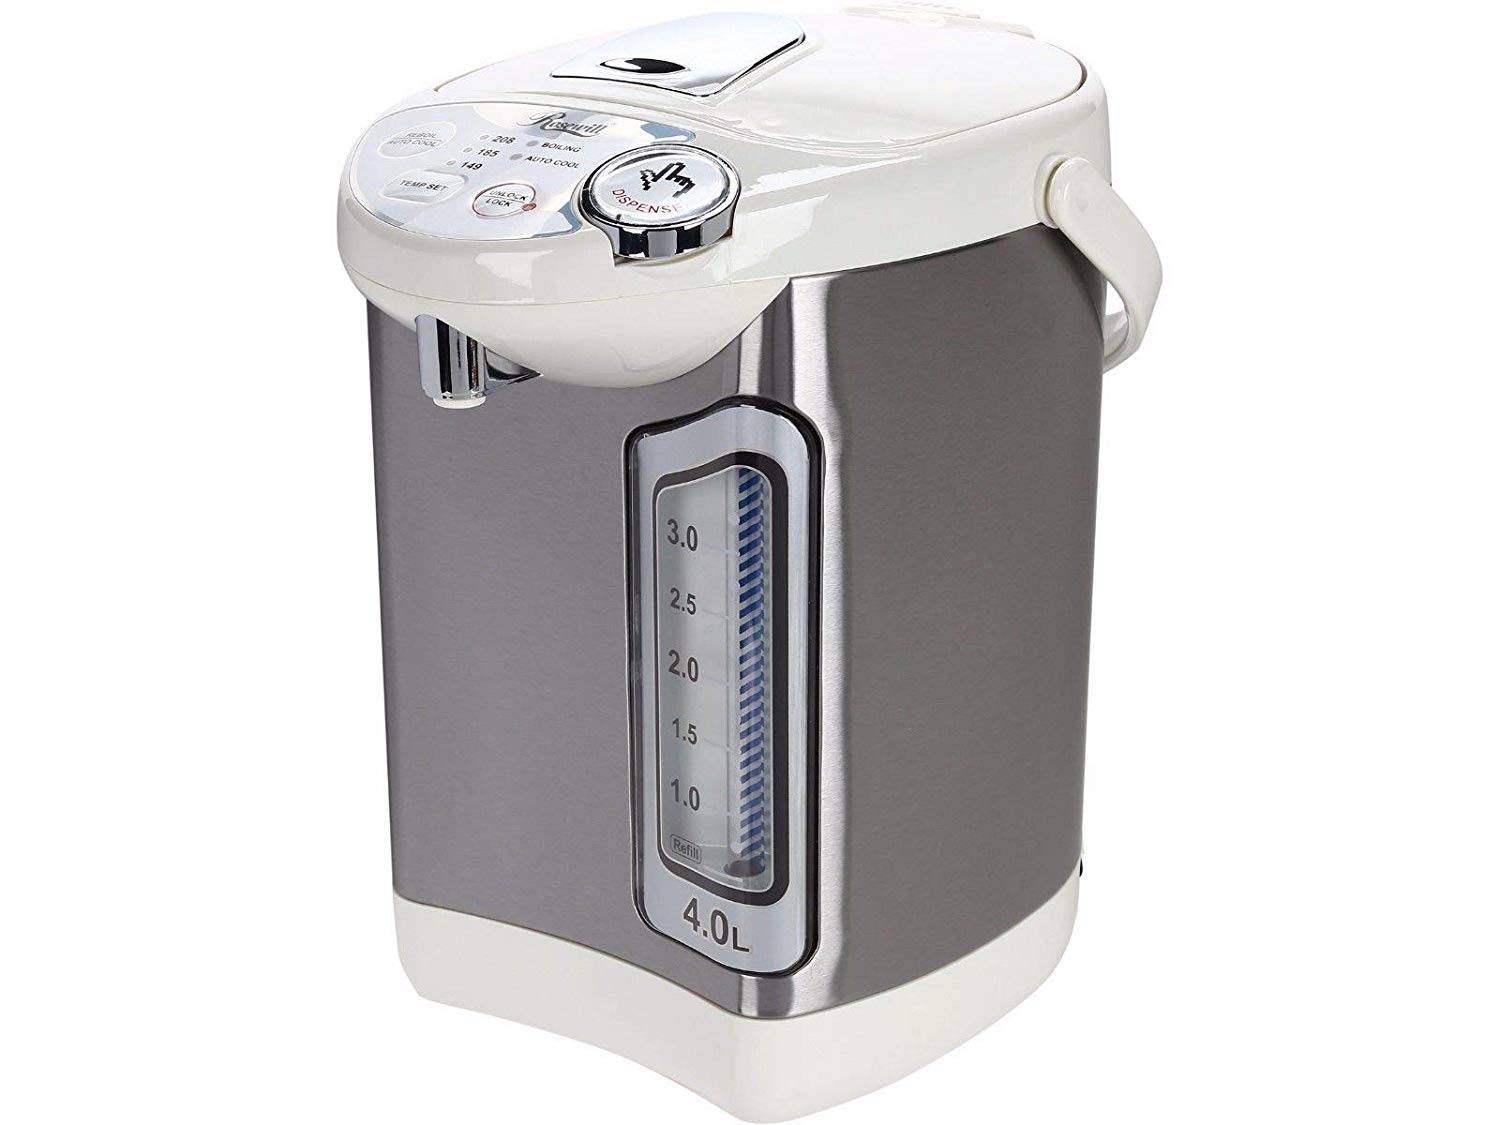 Water Hot Boiler Electric Pot Warmer 4 Liter Steel Dispenser Stainless, Home Kitchen And Coffee